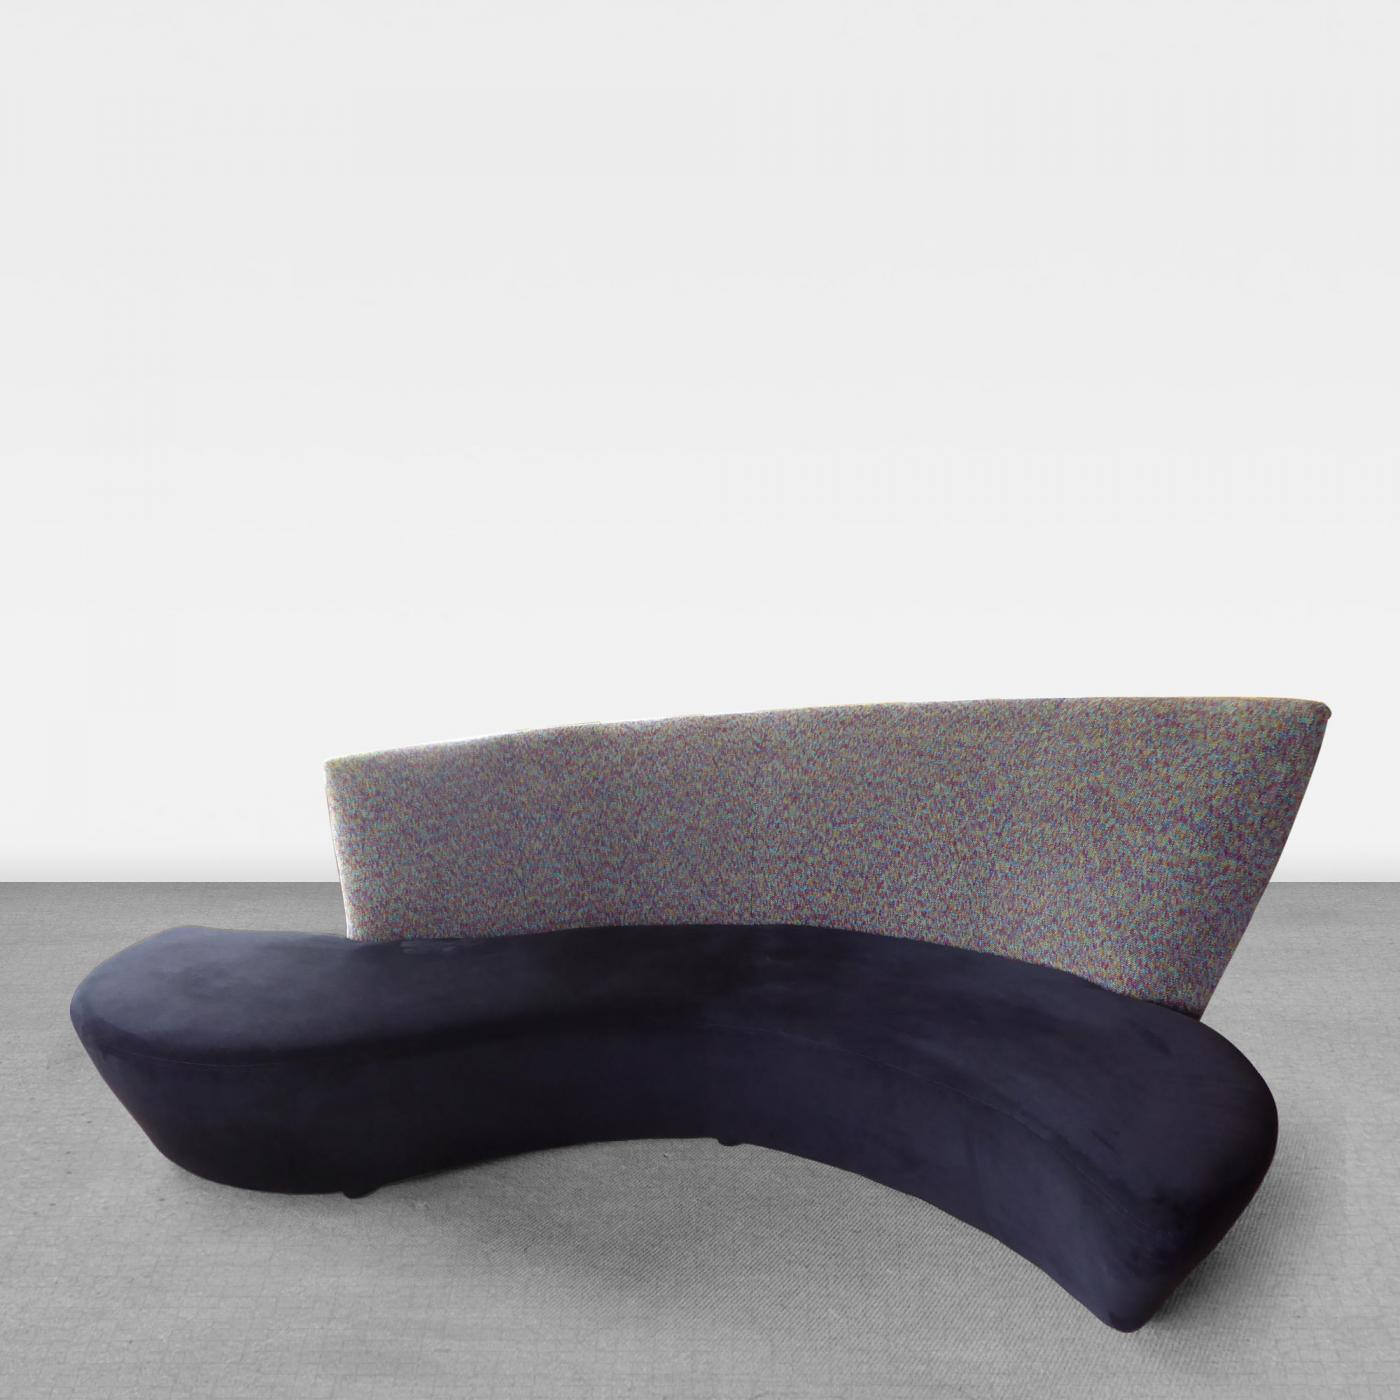 Bon Listings / Furniture / Seating / Sofas · Vladimir Kagan ...